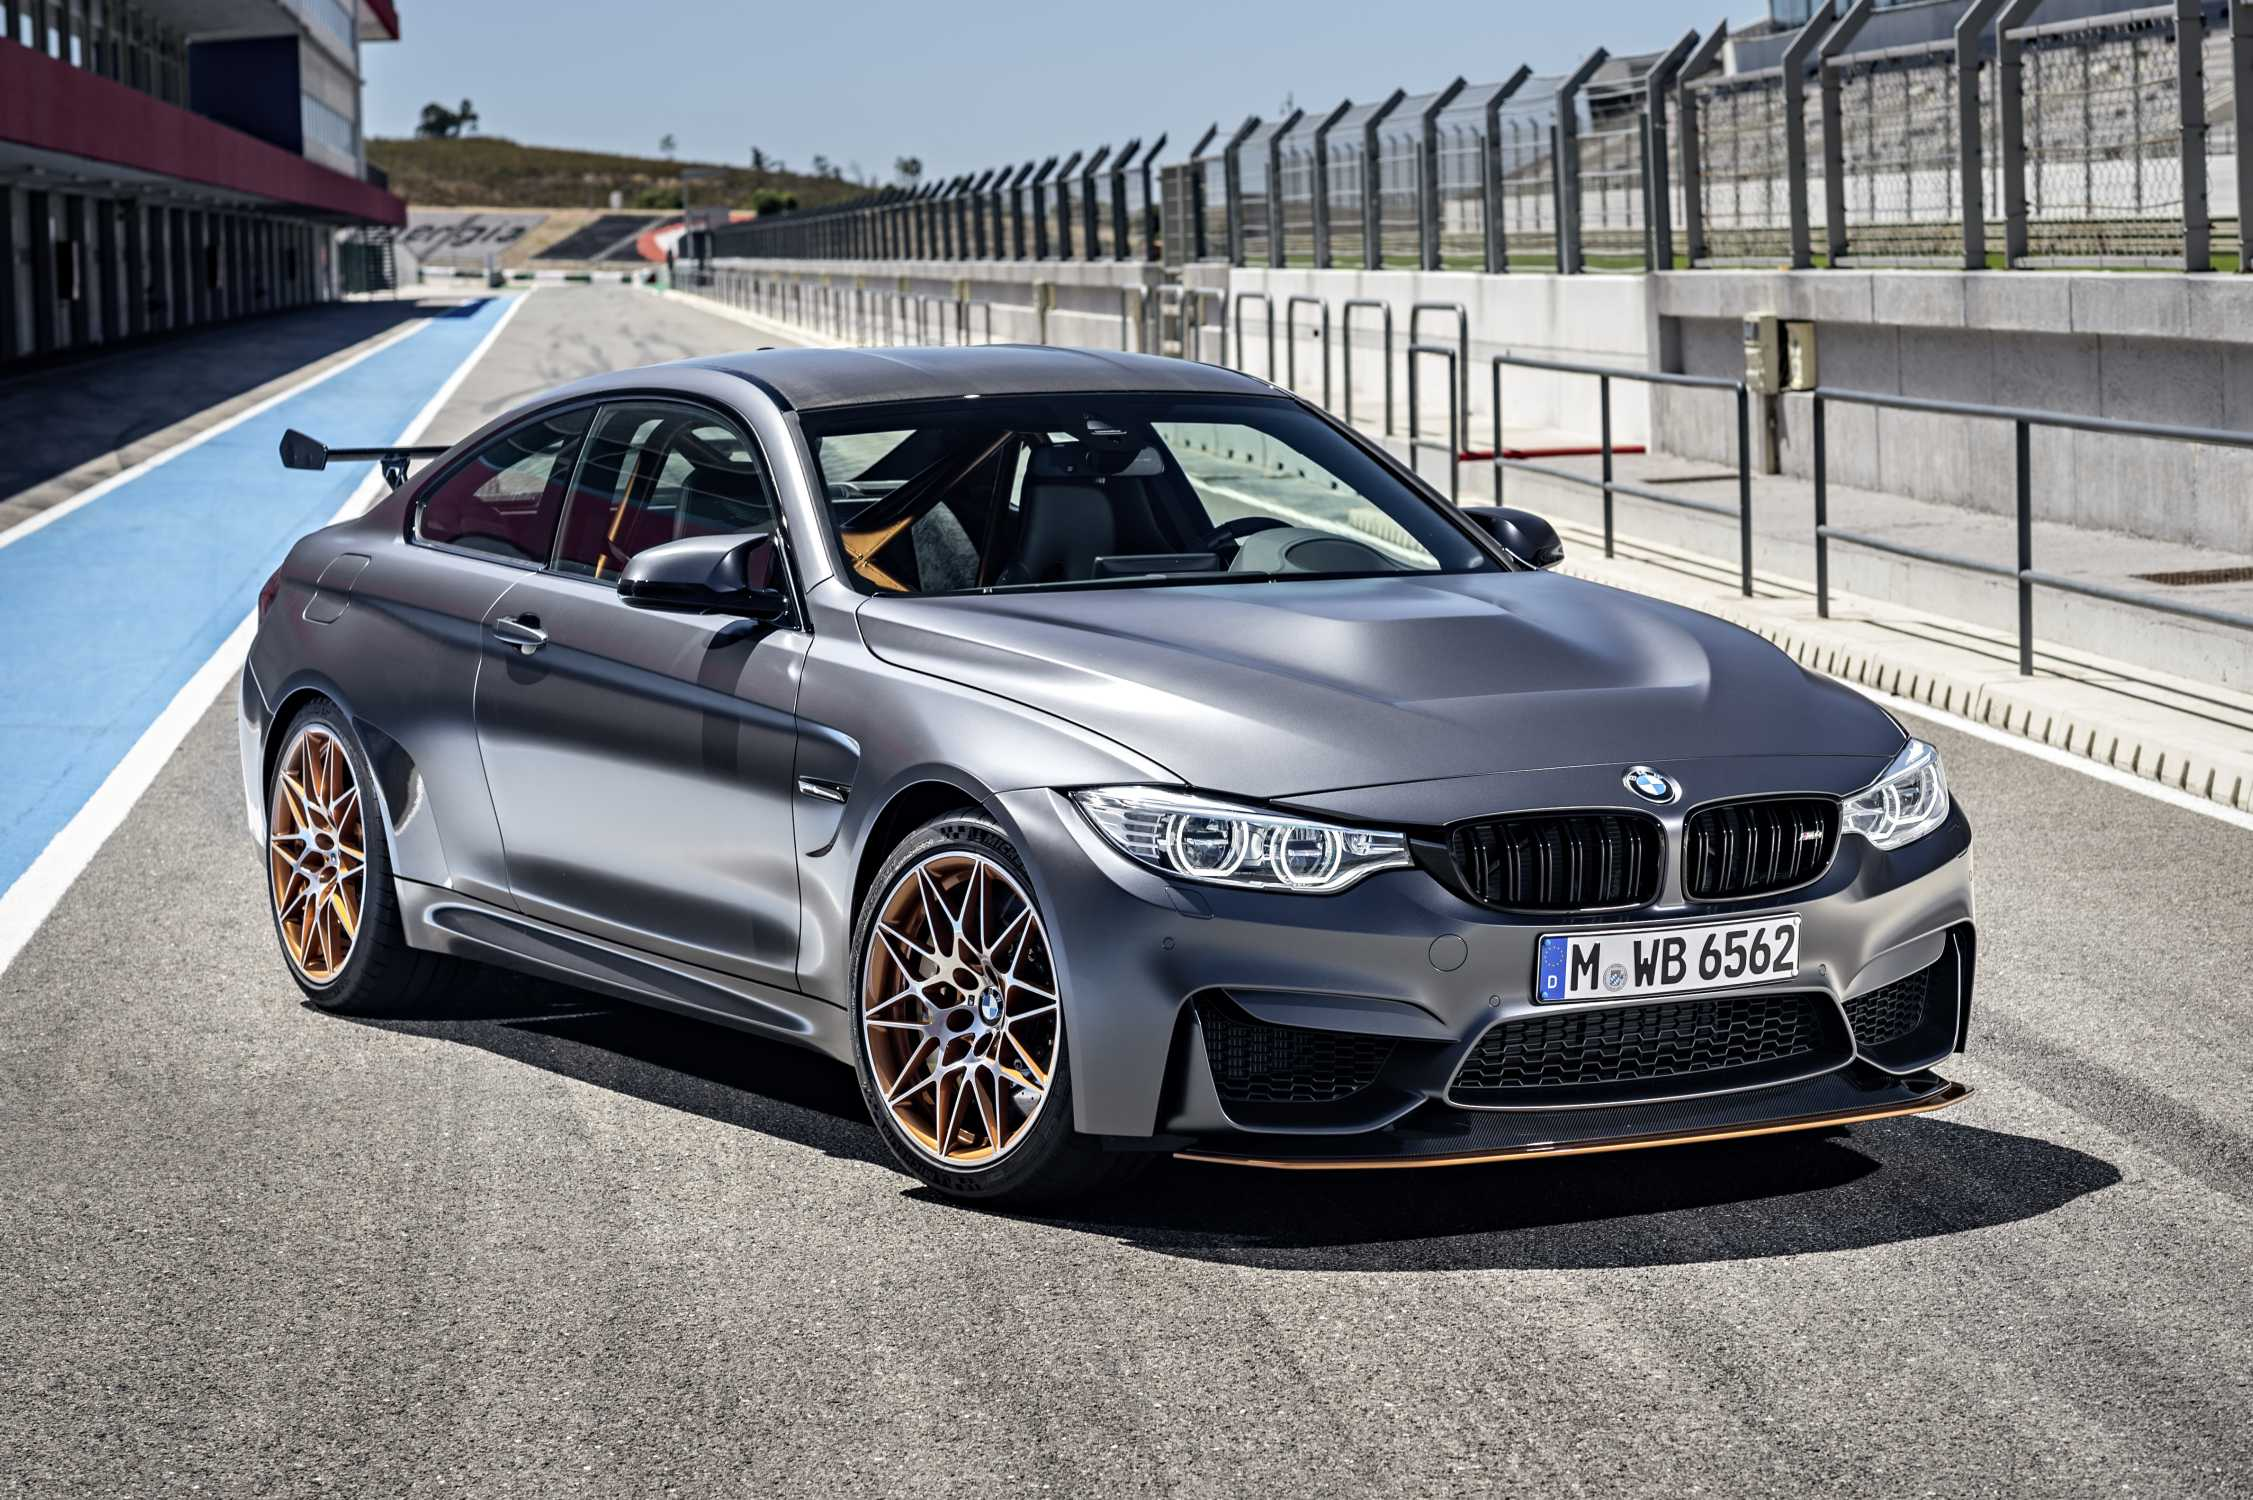 The new 2016 BMW M4 GTS an exclusive highperformance special